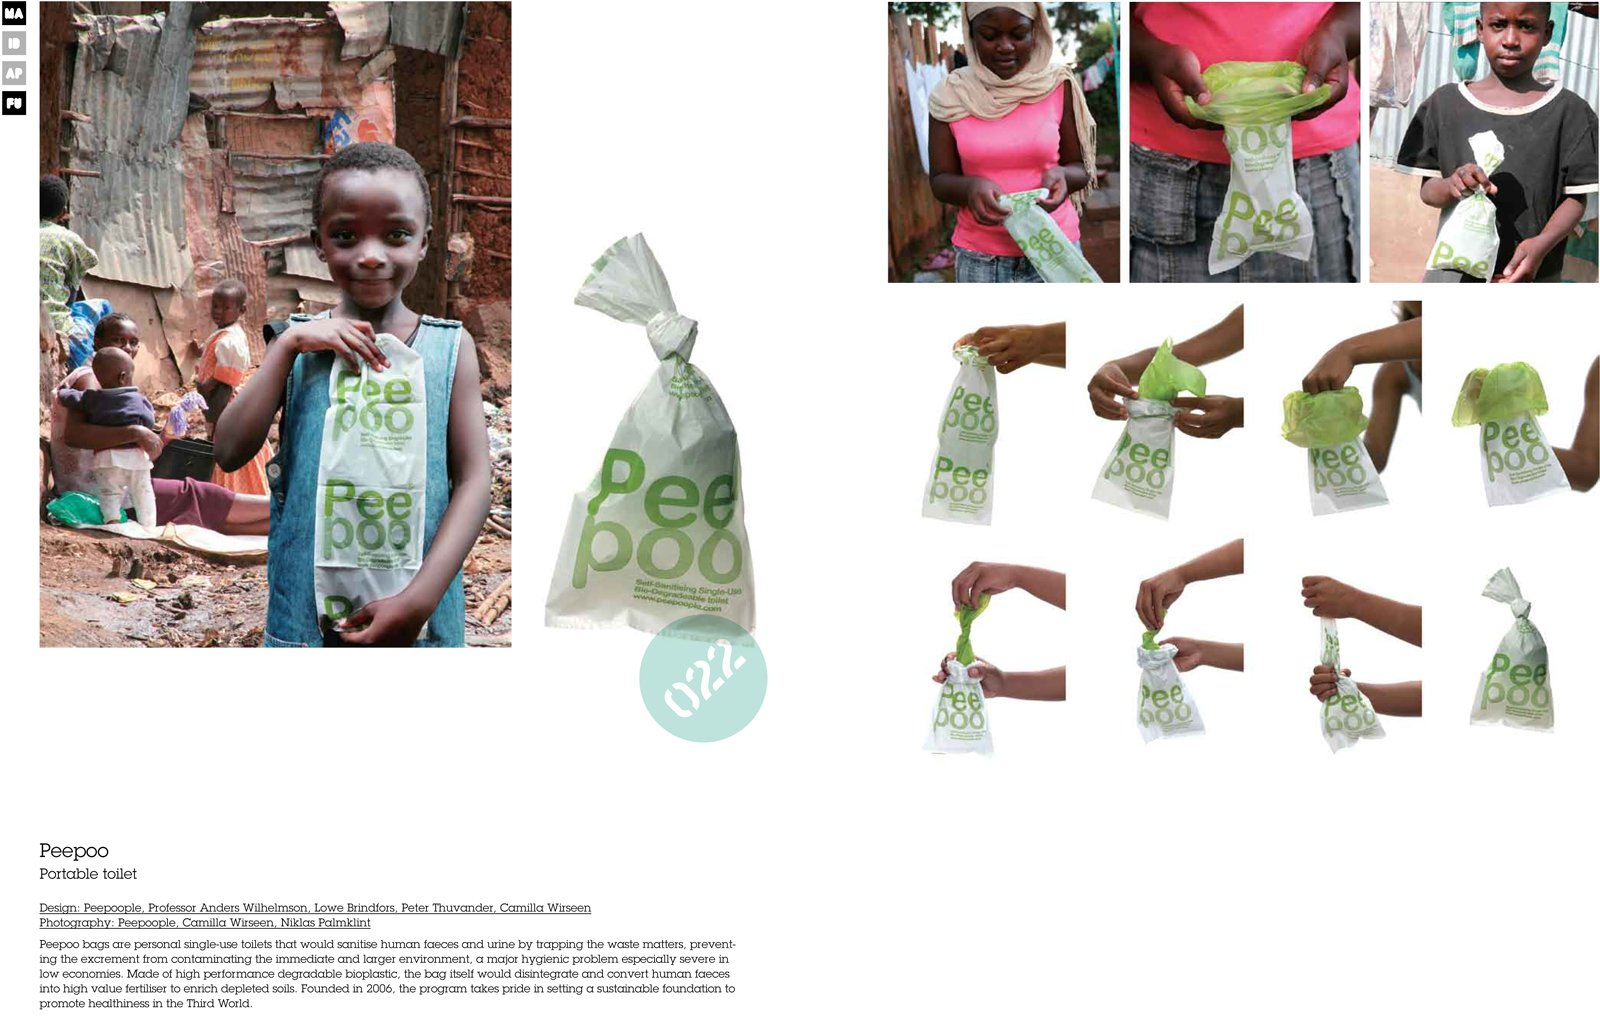 The PeePoo bag is a single-use toilet designed for individuals in densely populated areas that lack adequate plumbing and sanitation infrastructure. The bag sanitized waste and converts it into fertilizer; the bag itself is biodegradable and encourages the process.  Love Earth: Eco Ideas and Designs by Miyoko Ohtake